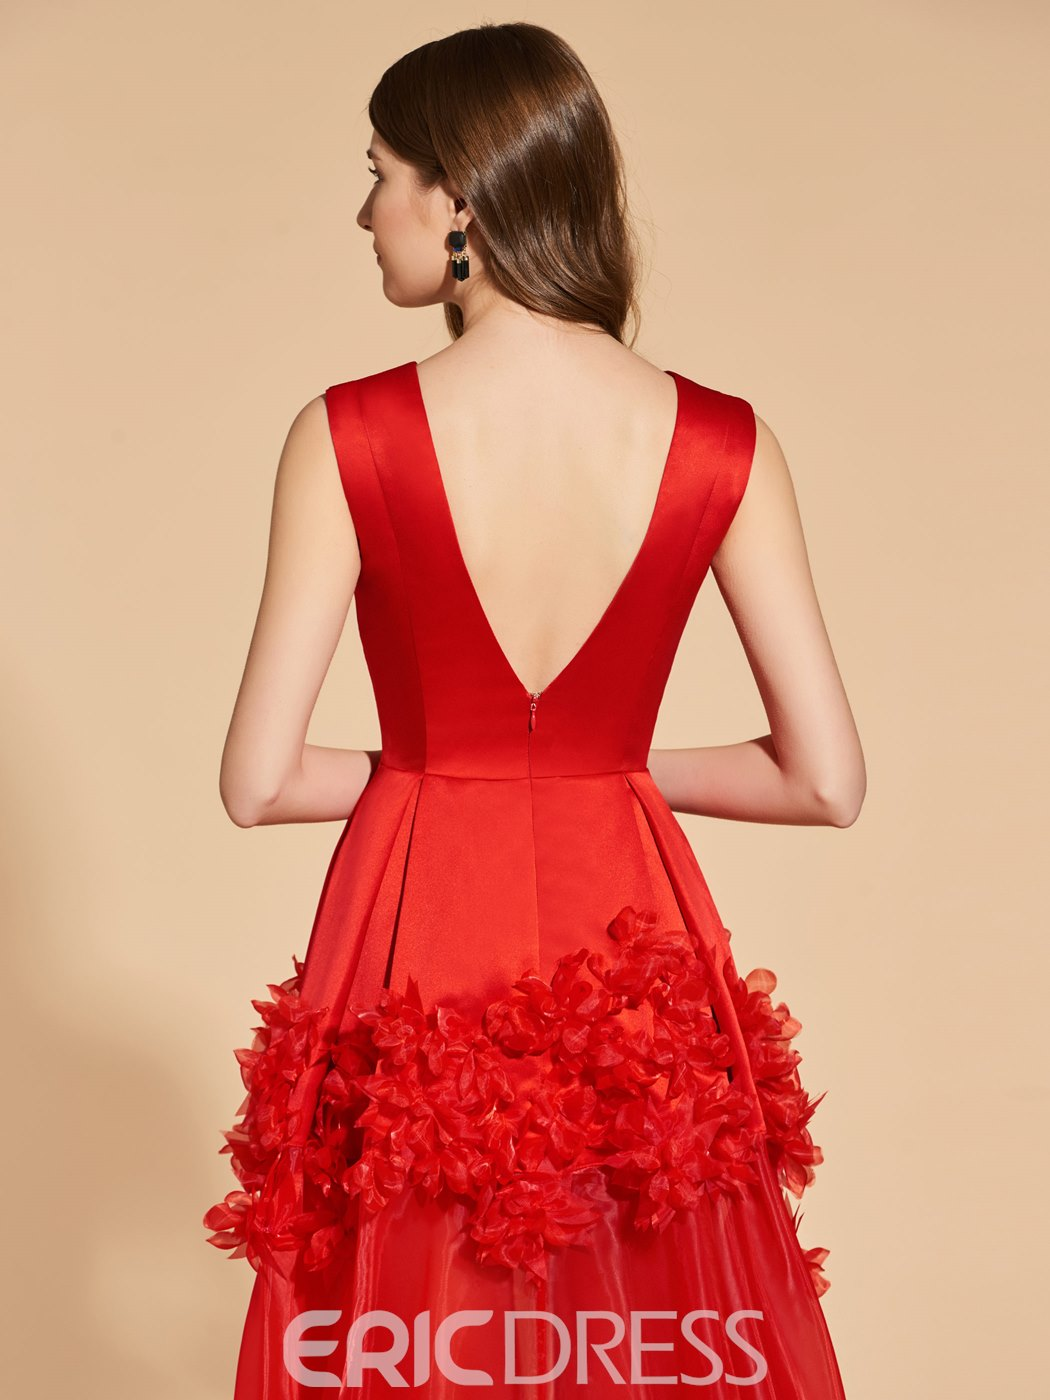 Ericdress A Line V Neck Flower Applique Red Prom Dress